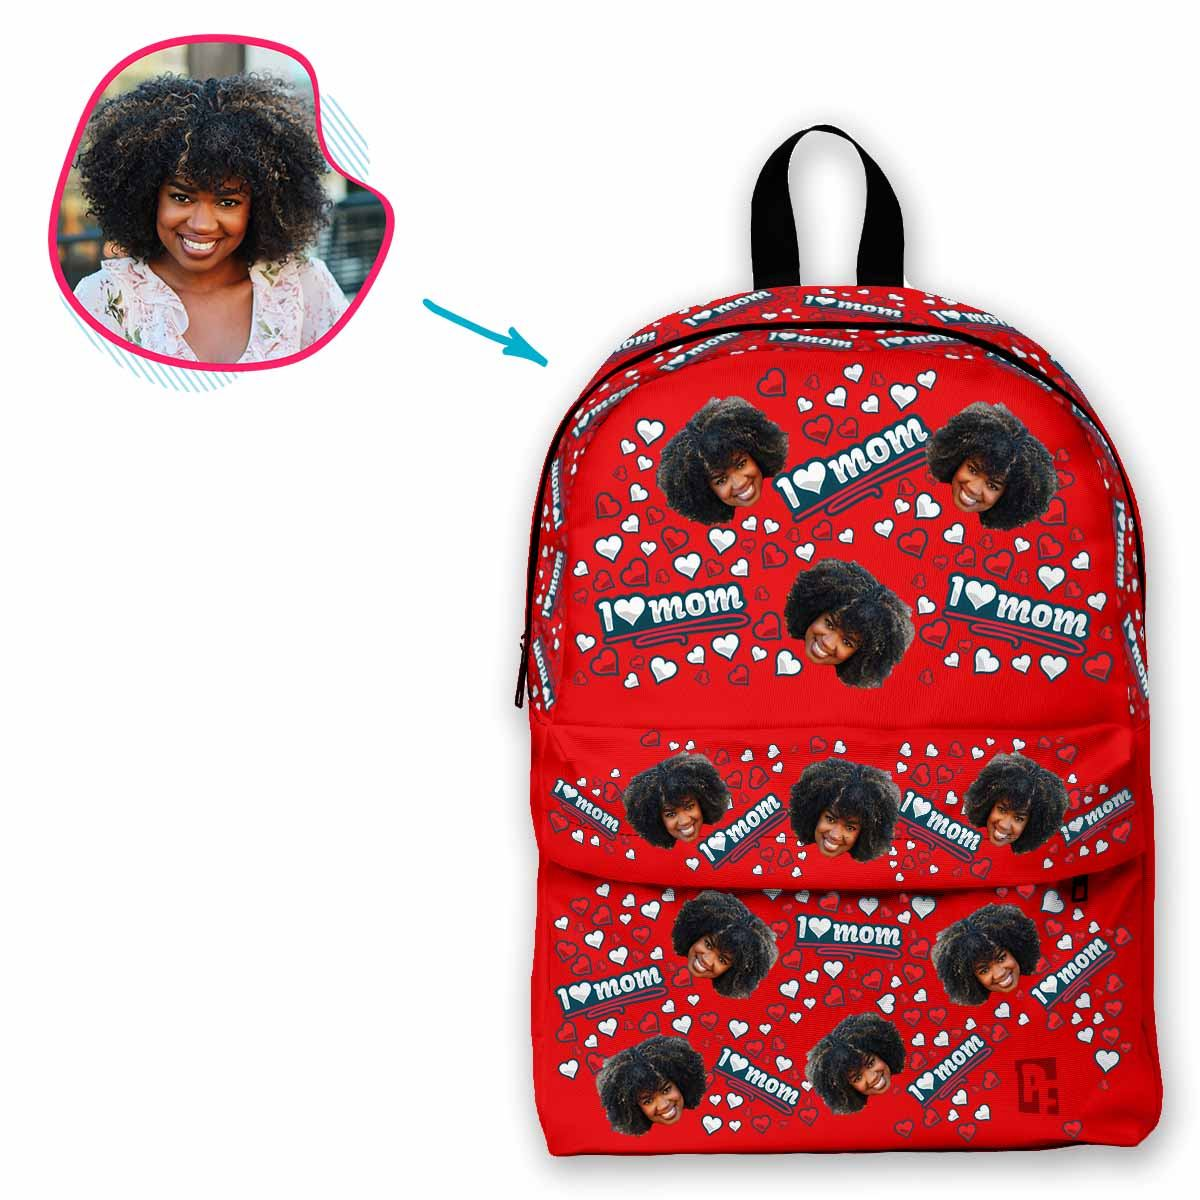 red Love Mom classic backpack personalized with photo of face printed on it